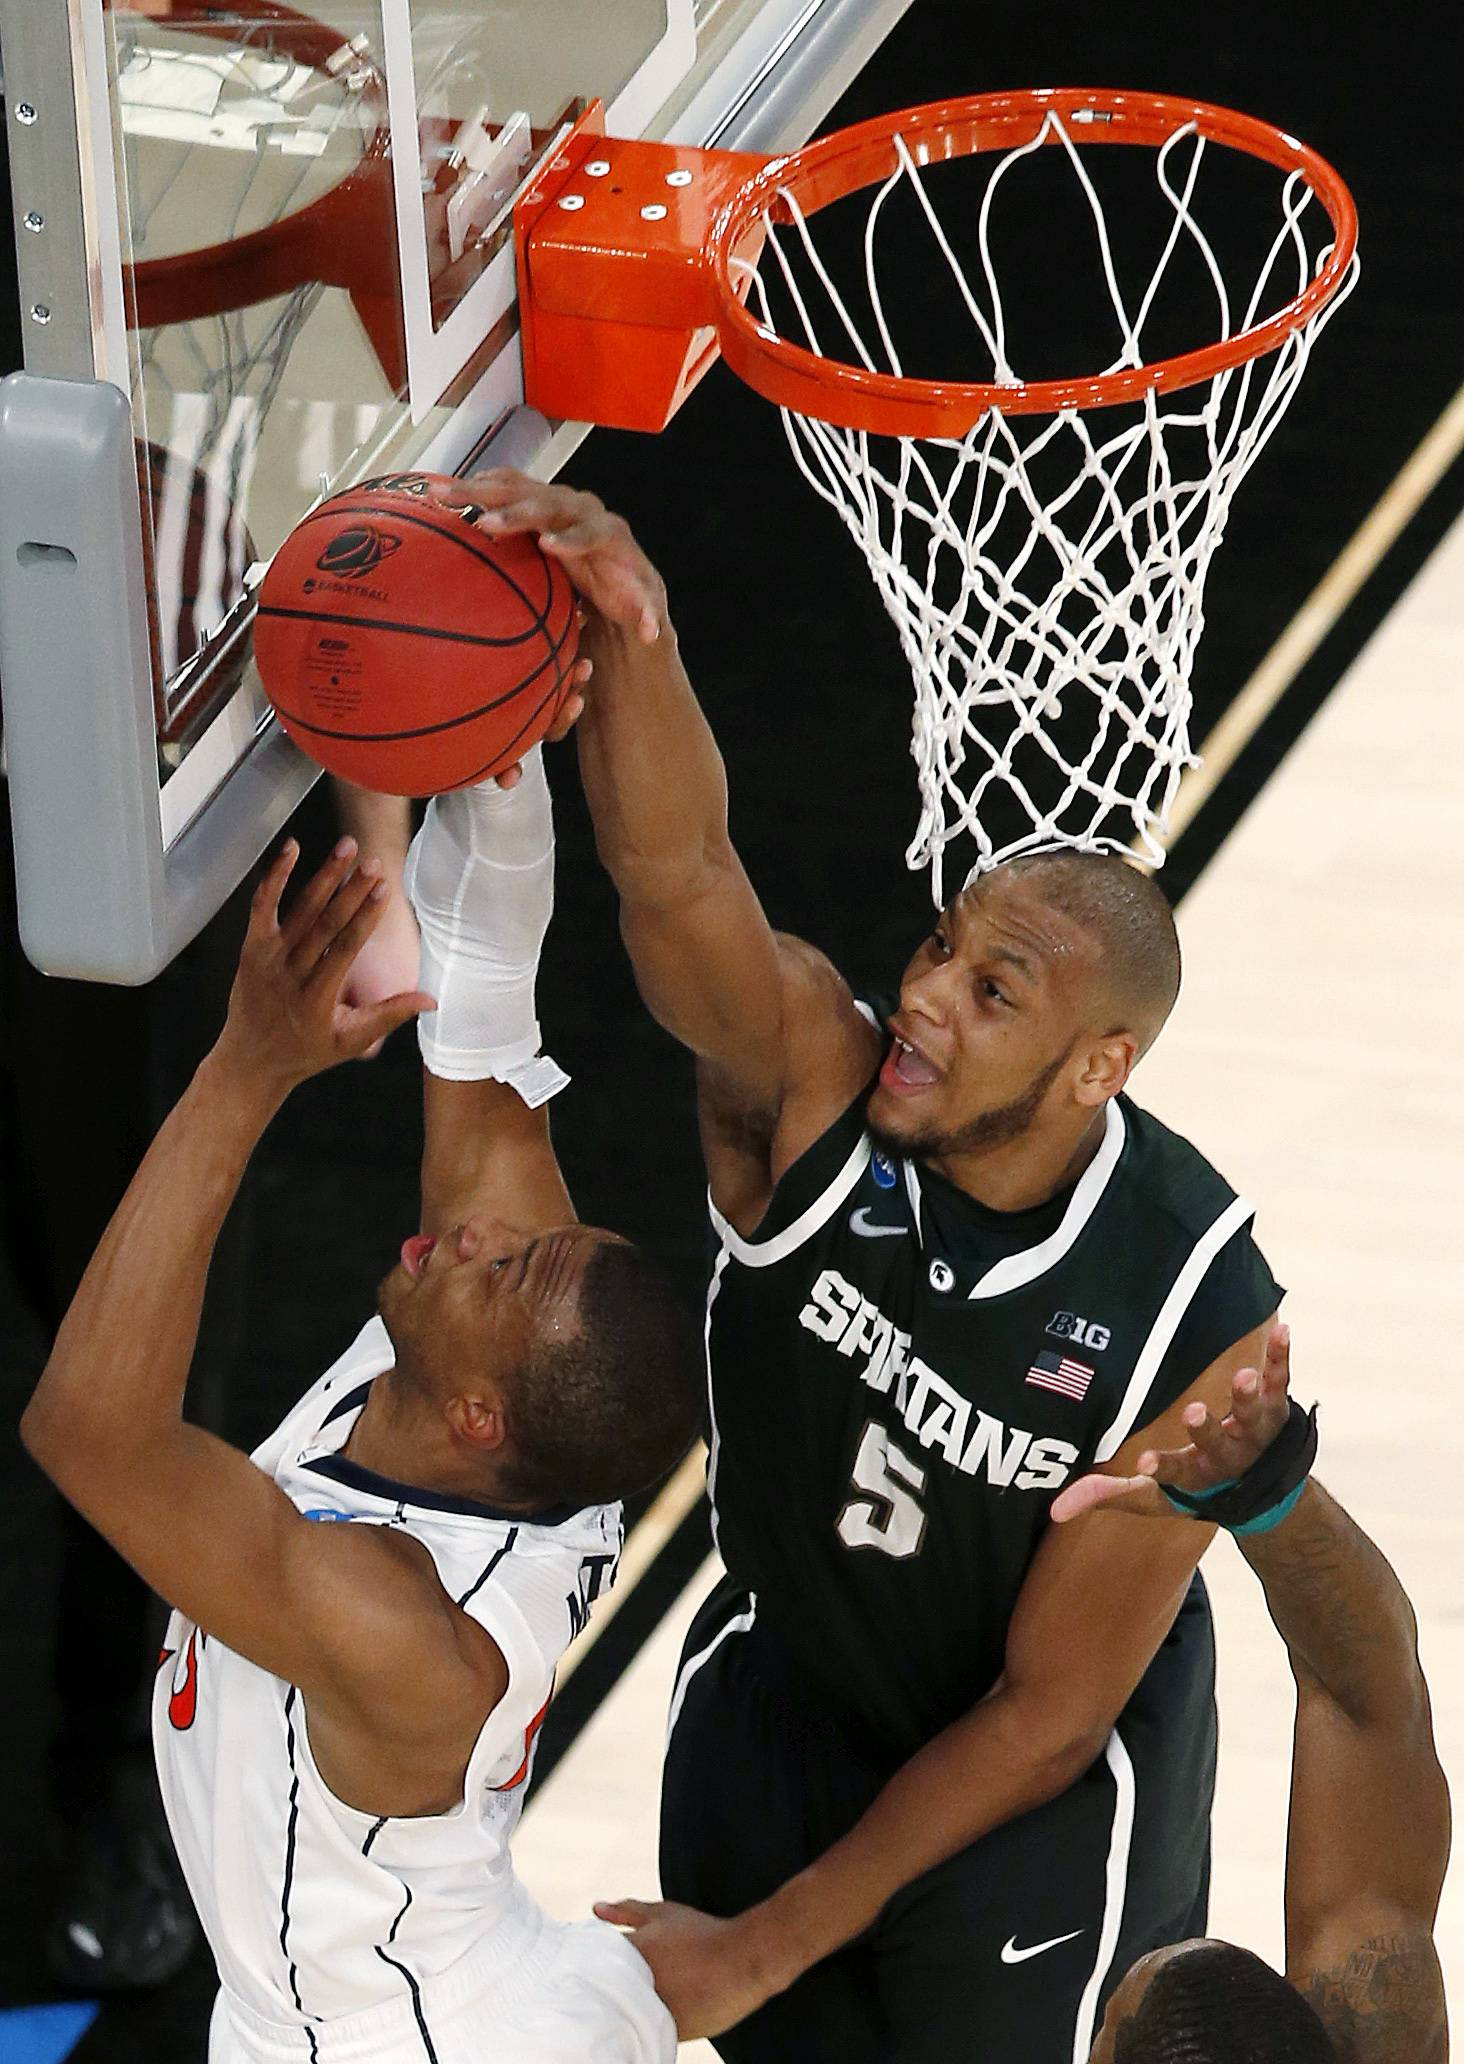 Michigan State forward Adreian Payne, top, blocks a shot by Virginia forward Akil Mitchell during second half of a regional semifinal at the NCAA men's college basketball tournament, early Saturday, March 29, 2014, in New York.